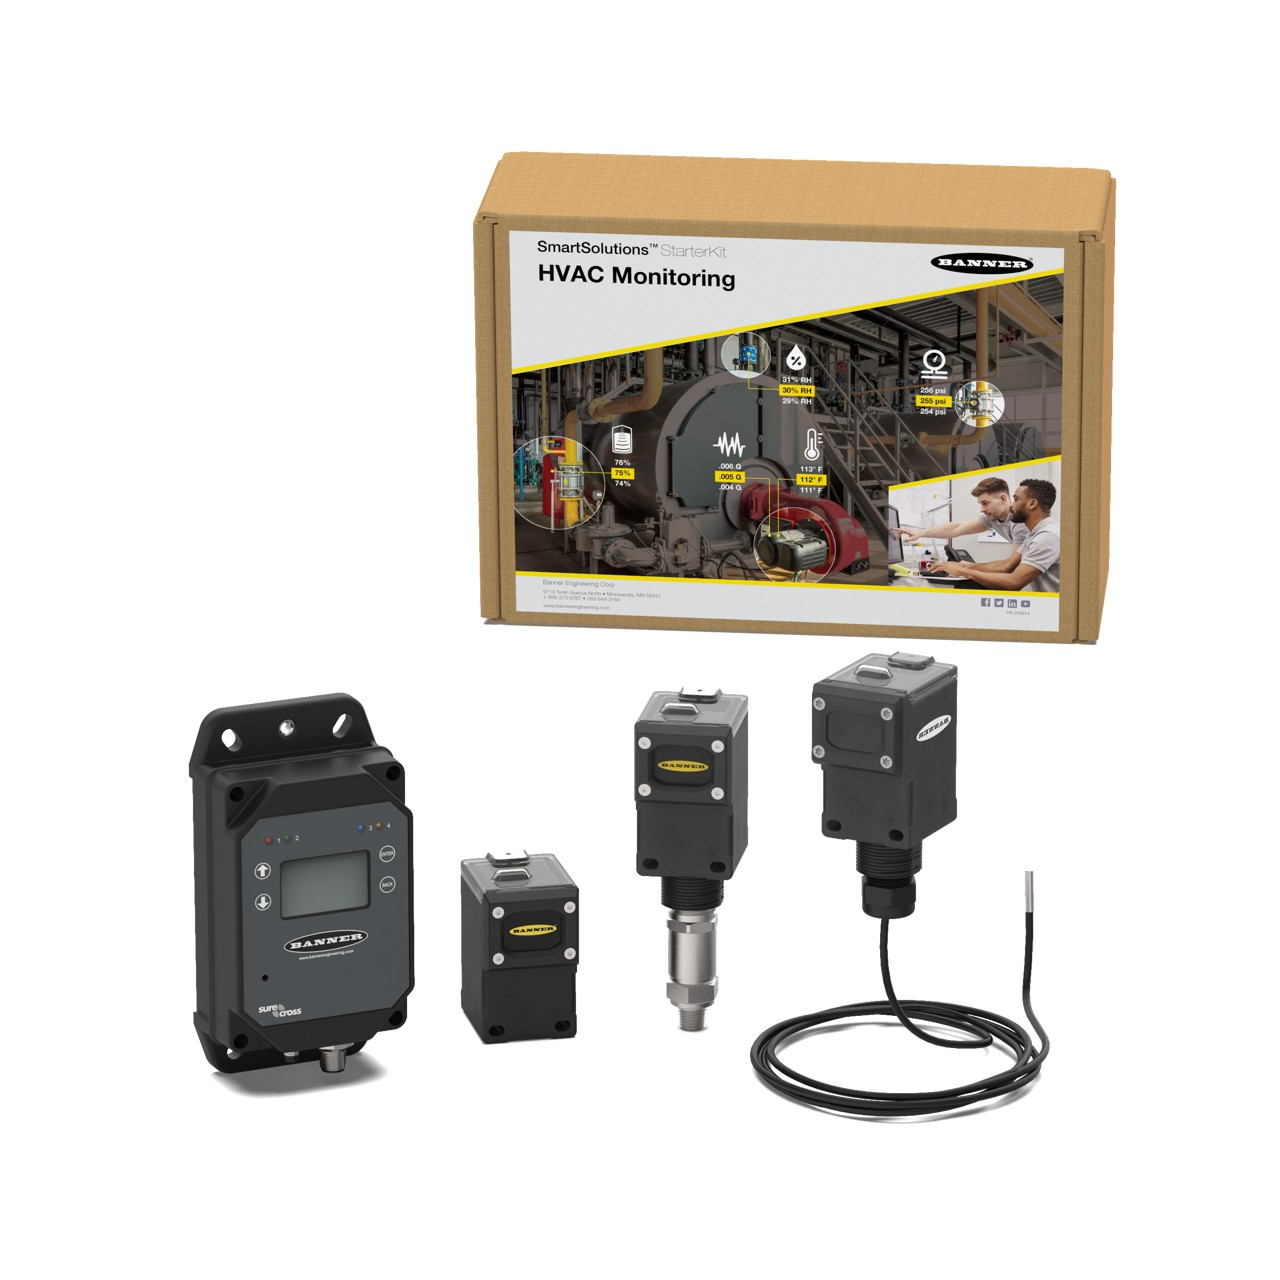 hvac-monitoring-kit